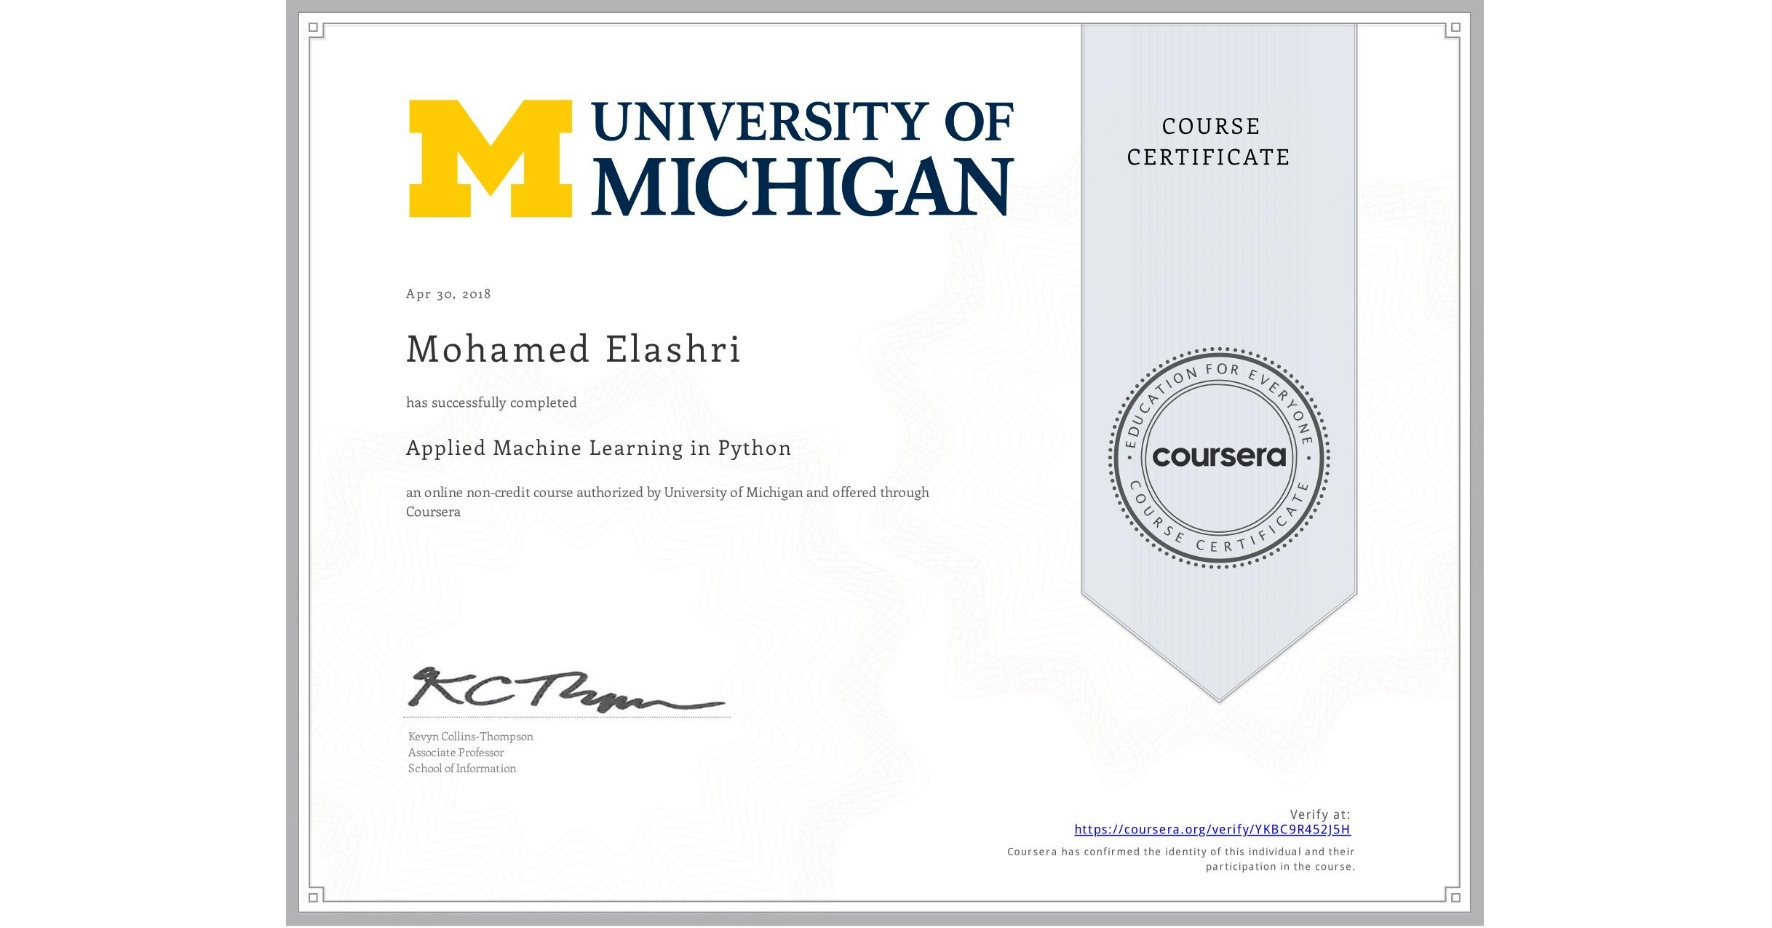 View certificate for Mohamed Elashri, Applied Machine Learning in Python, an online non-credit course authorized by University of Michigan and offered through Coursera